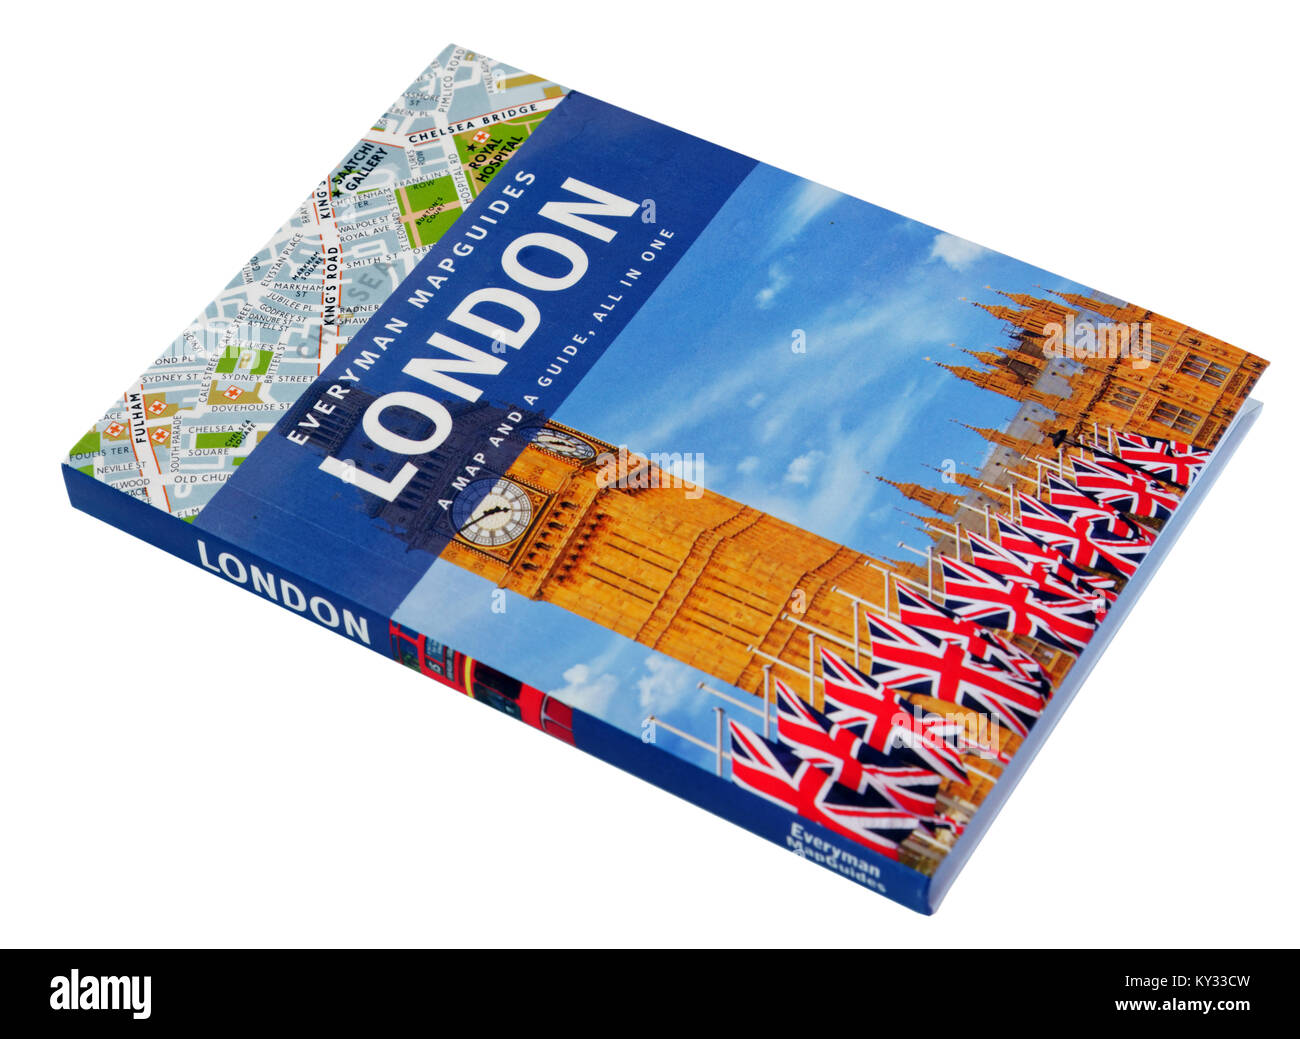 A guide to London - Stock Image